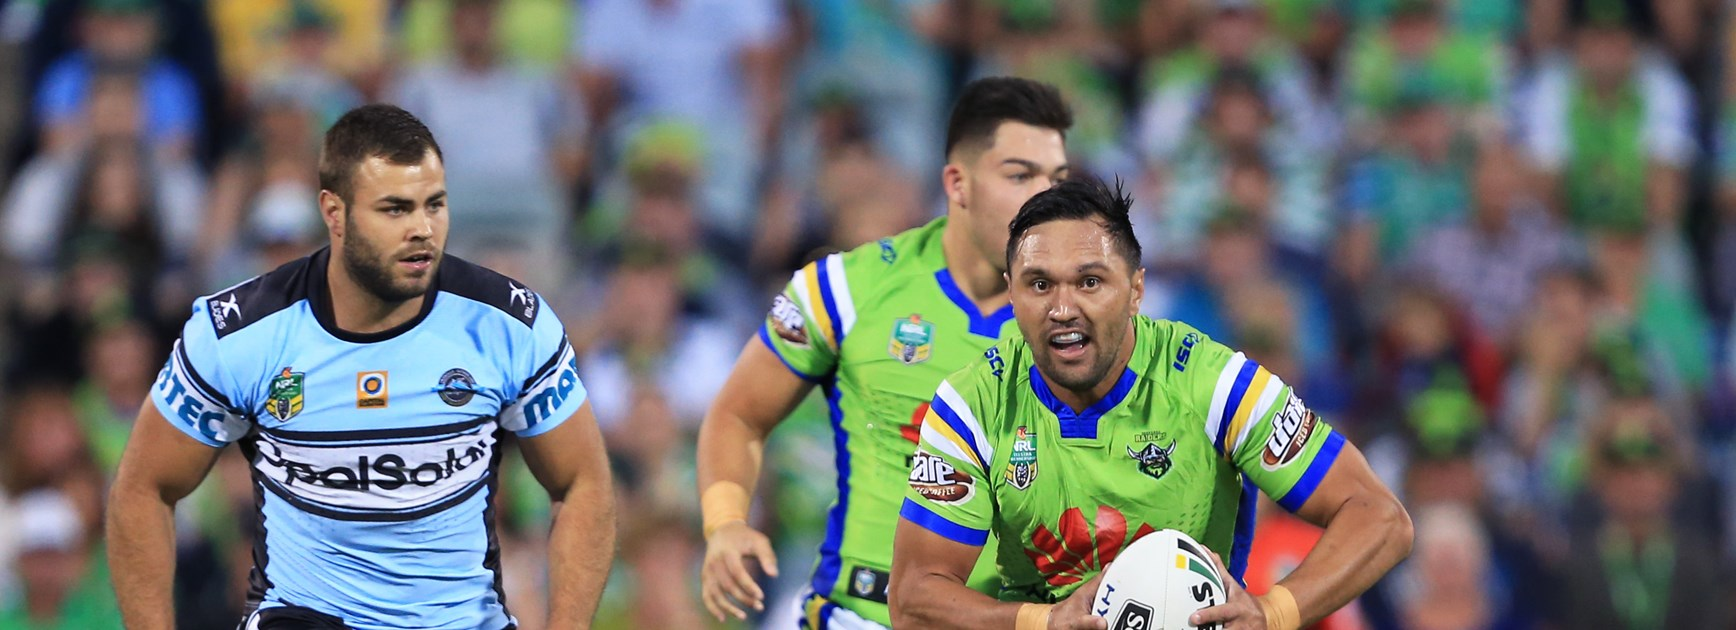 2018 NRL Fantasy guide: Raiders